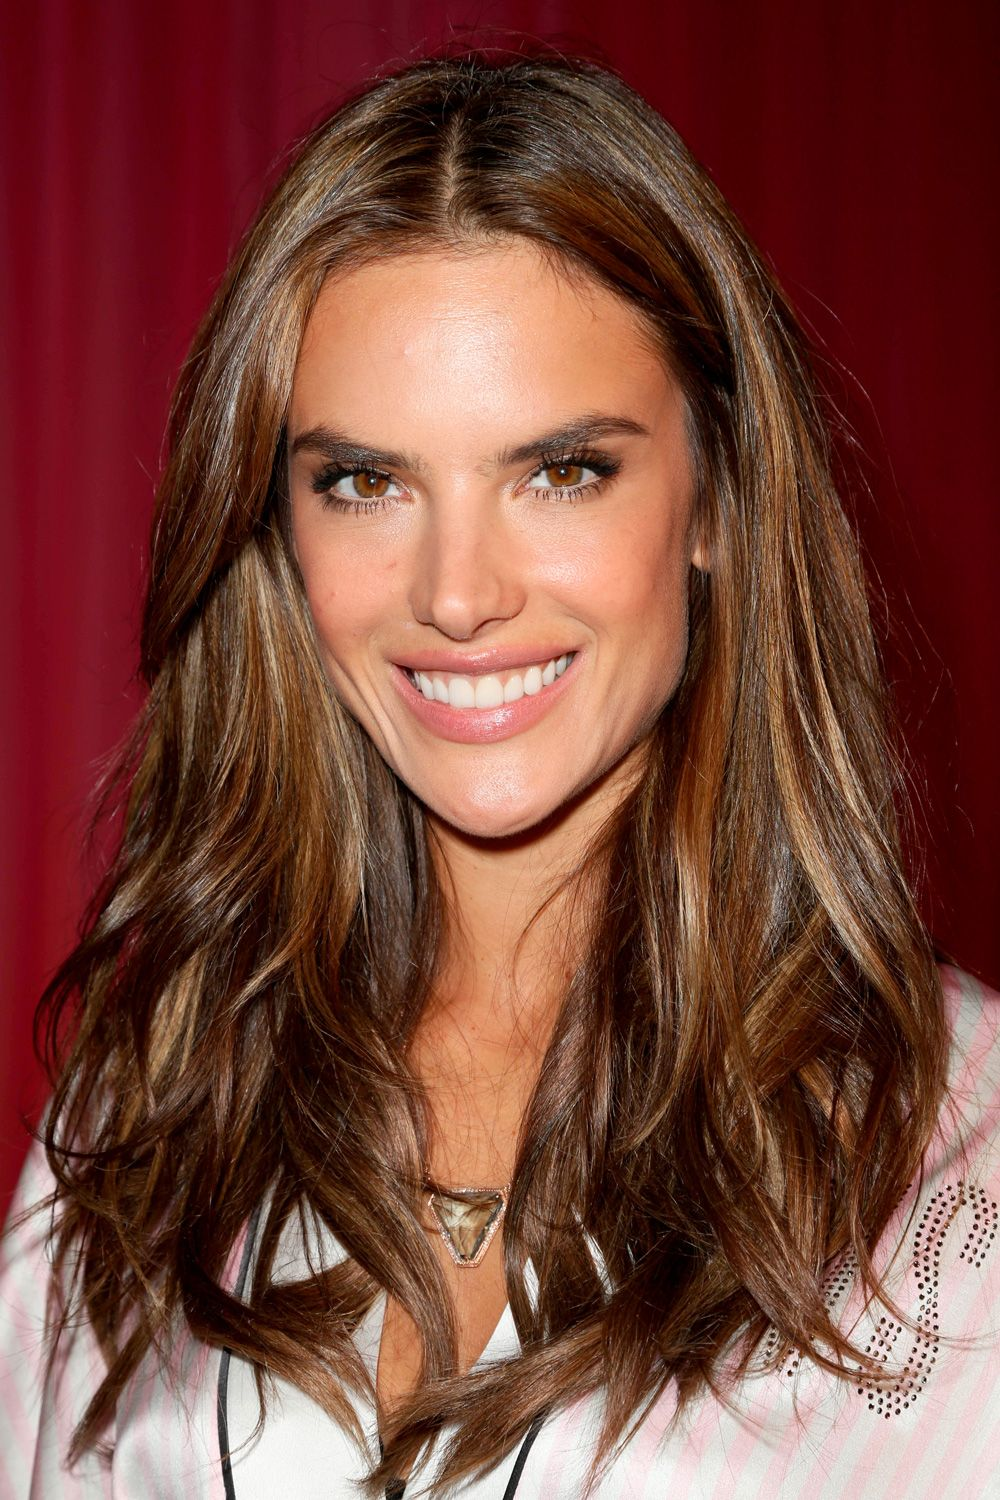 Beauty Tips Celebrity Style And Fashion Advice From Hair